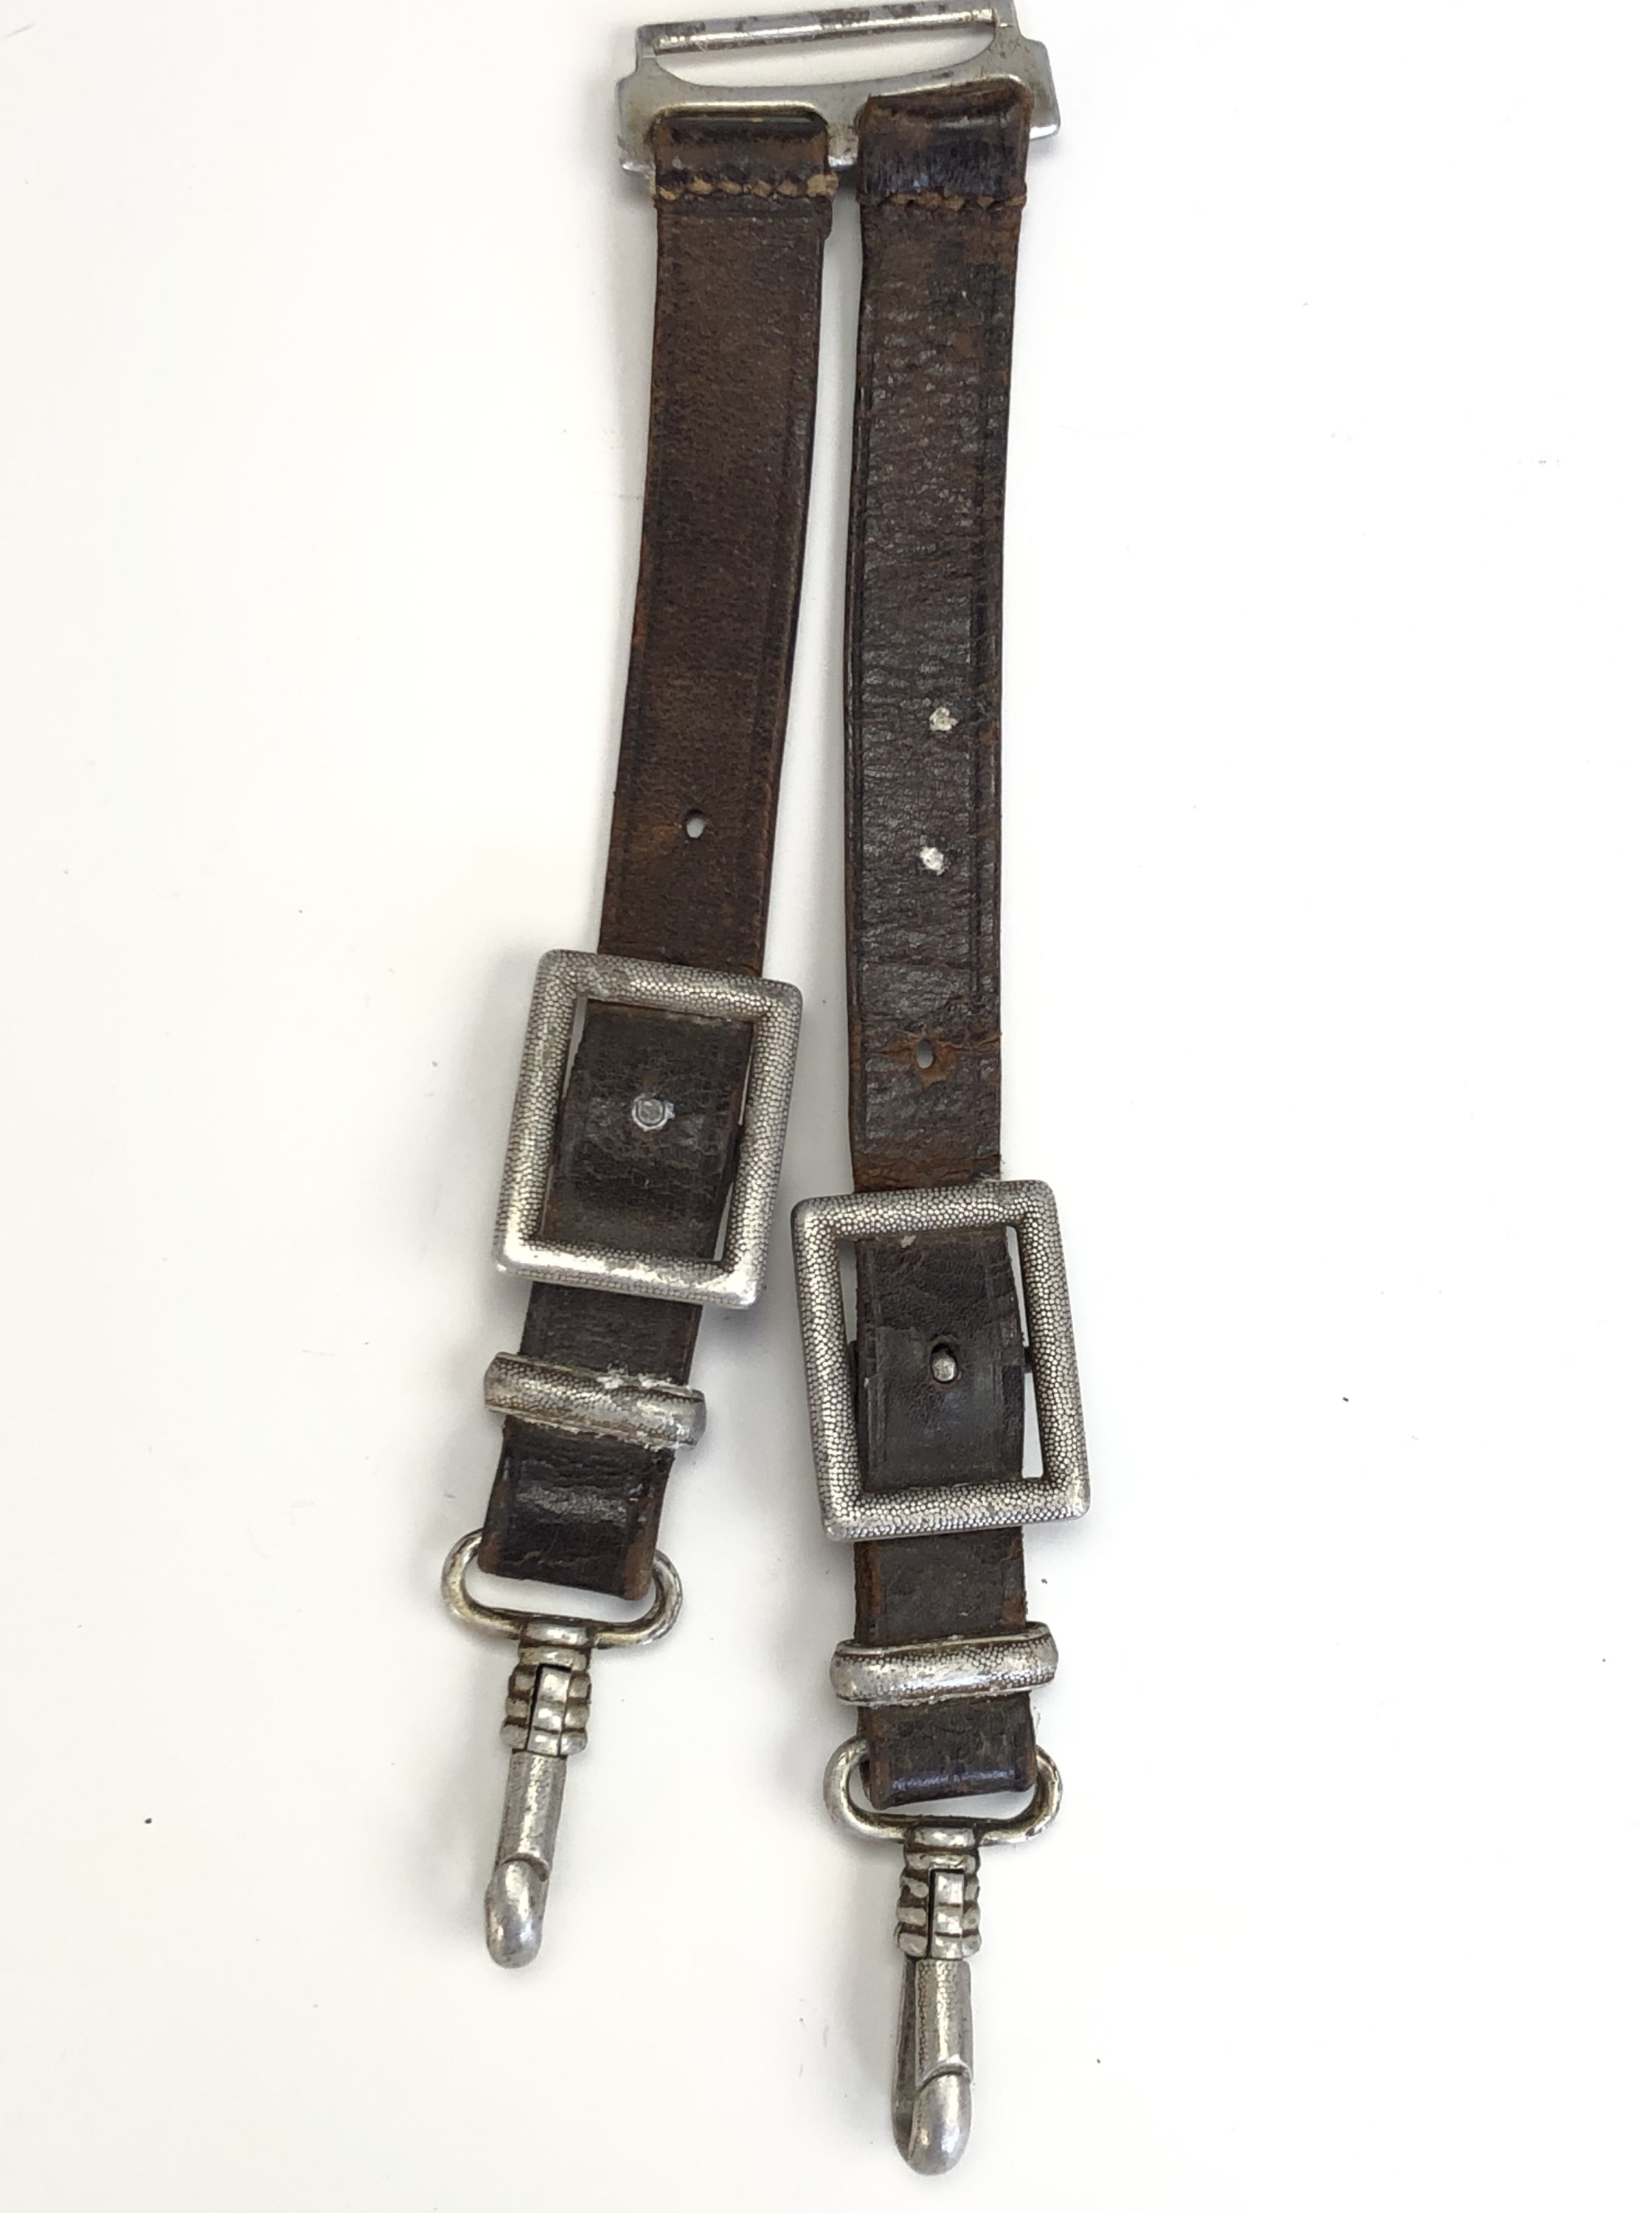 A German Third Reich RAD officer's dagger by Alcoso, with hanging straps - Image 8 of 9